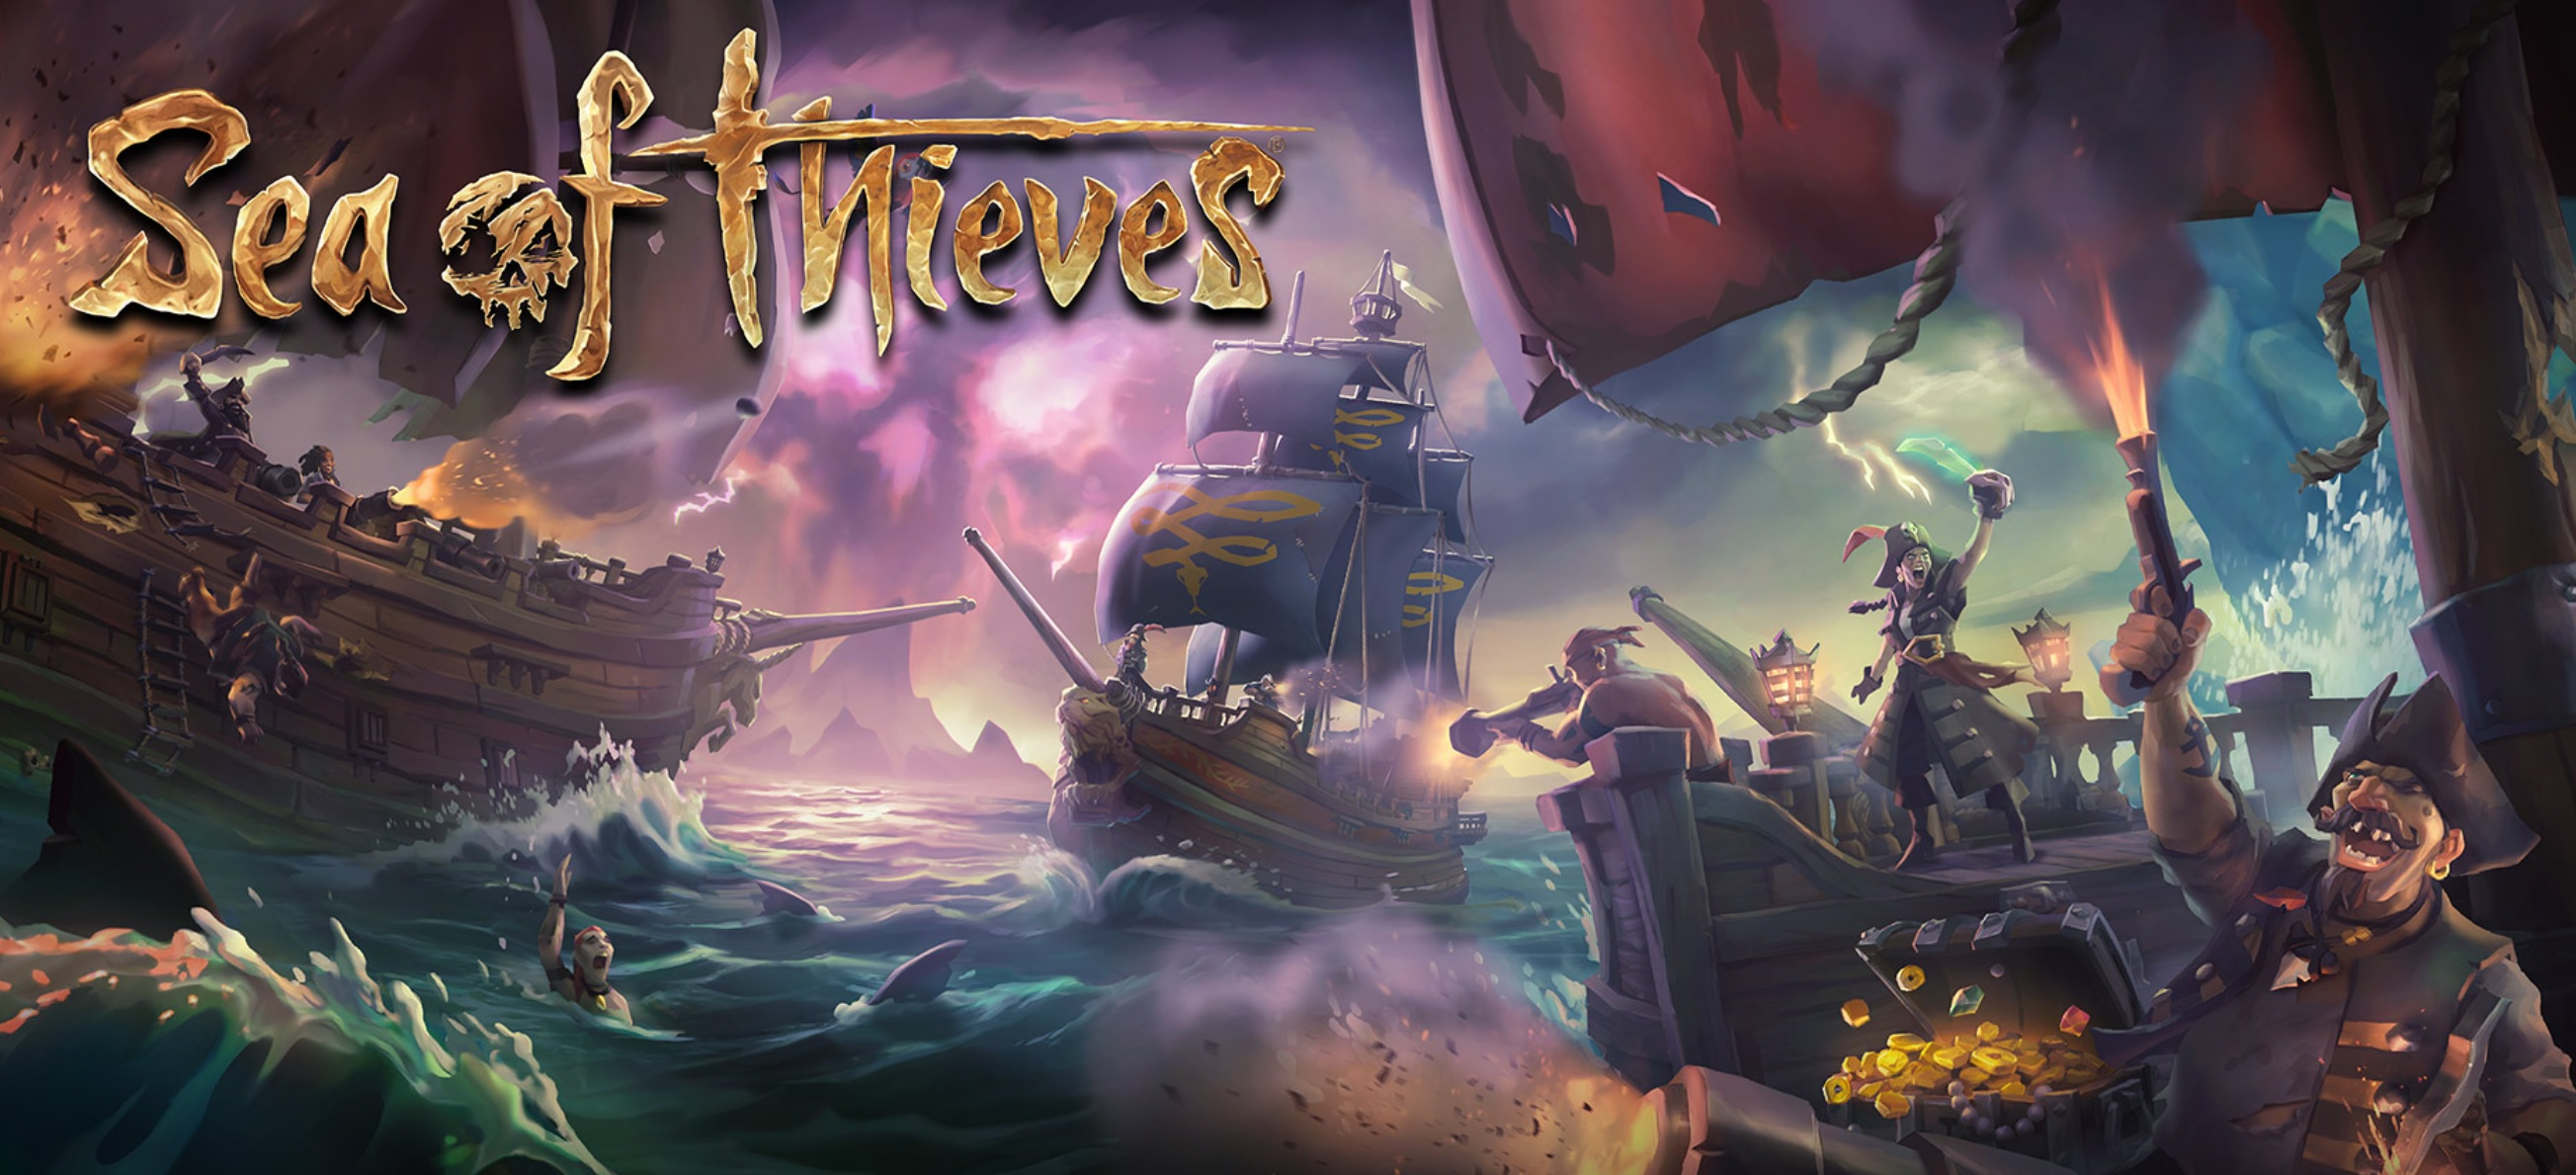 Sea of Thieves ya está disponible para Xbox One y Windows 10 PC